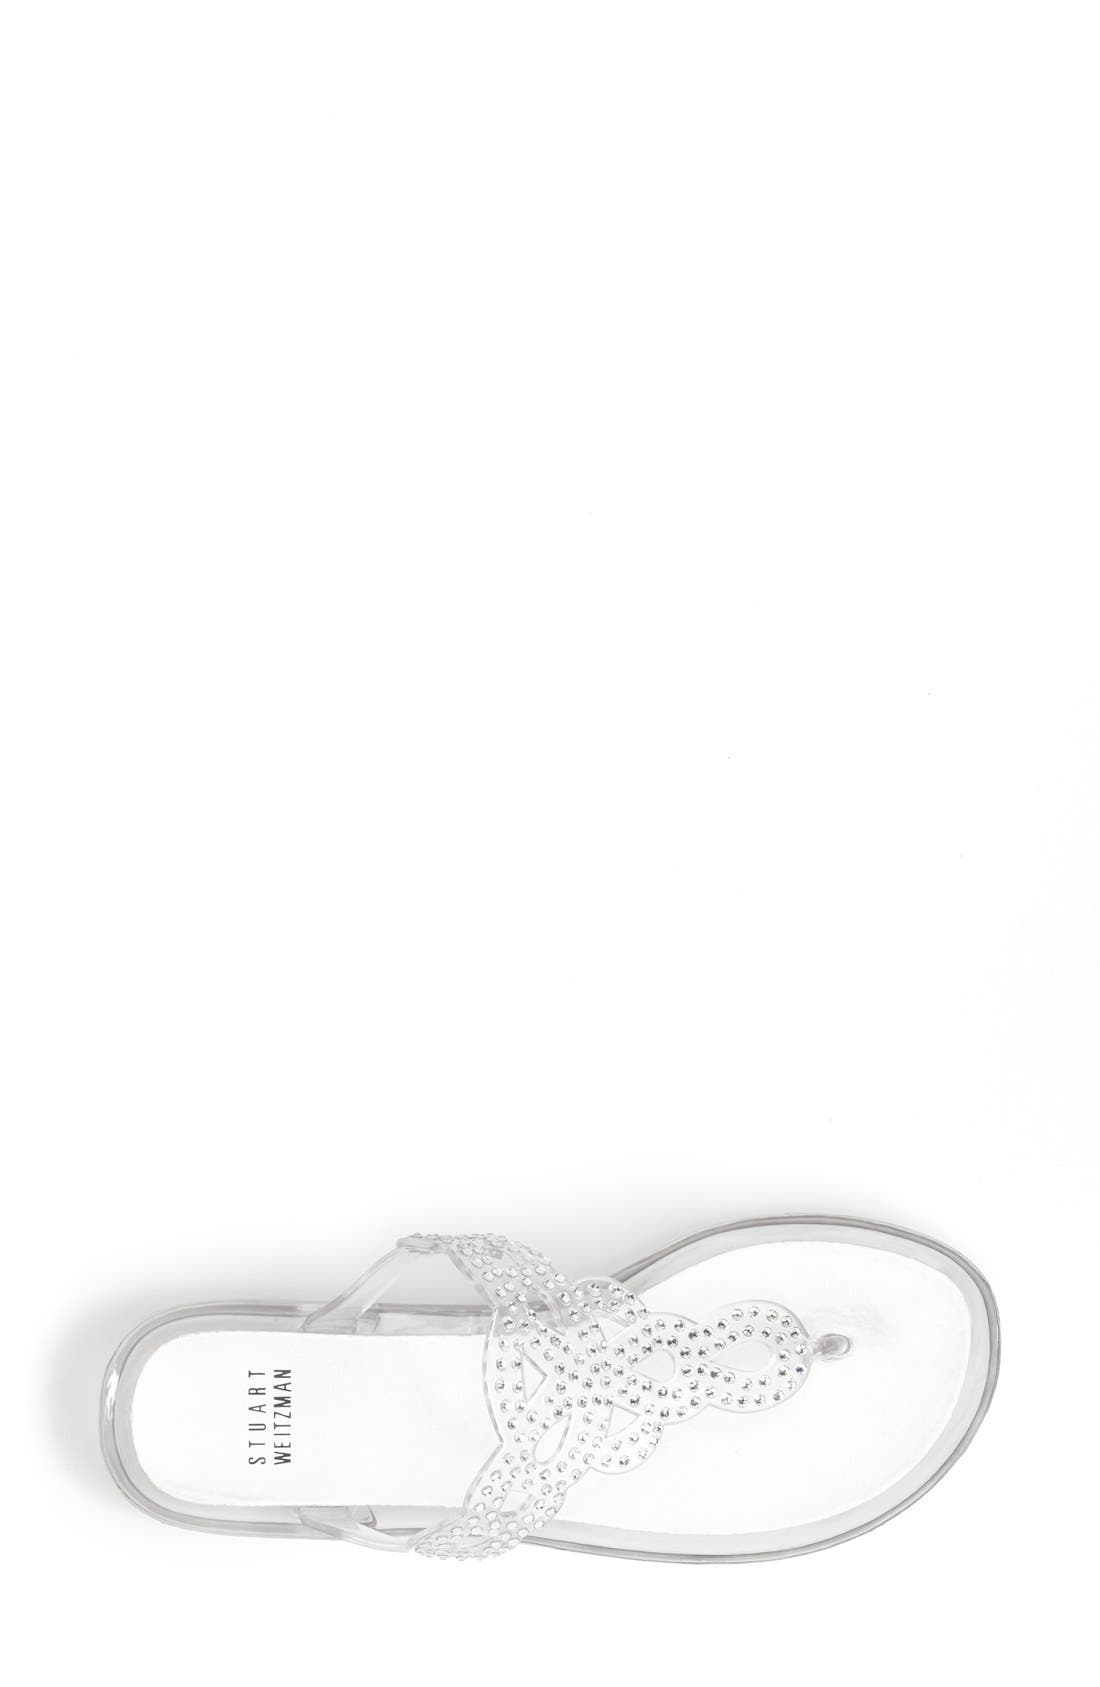 Alternate Image 4  - Stuart Weitzman 'Mermaid' Crystal Embellished Jelly Sandal (Women)